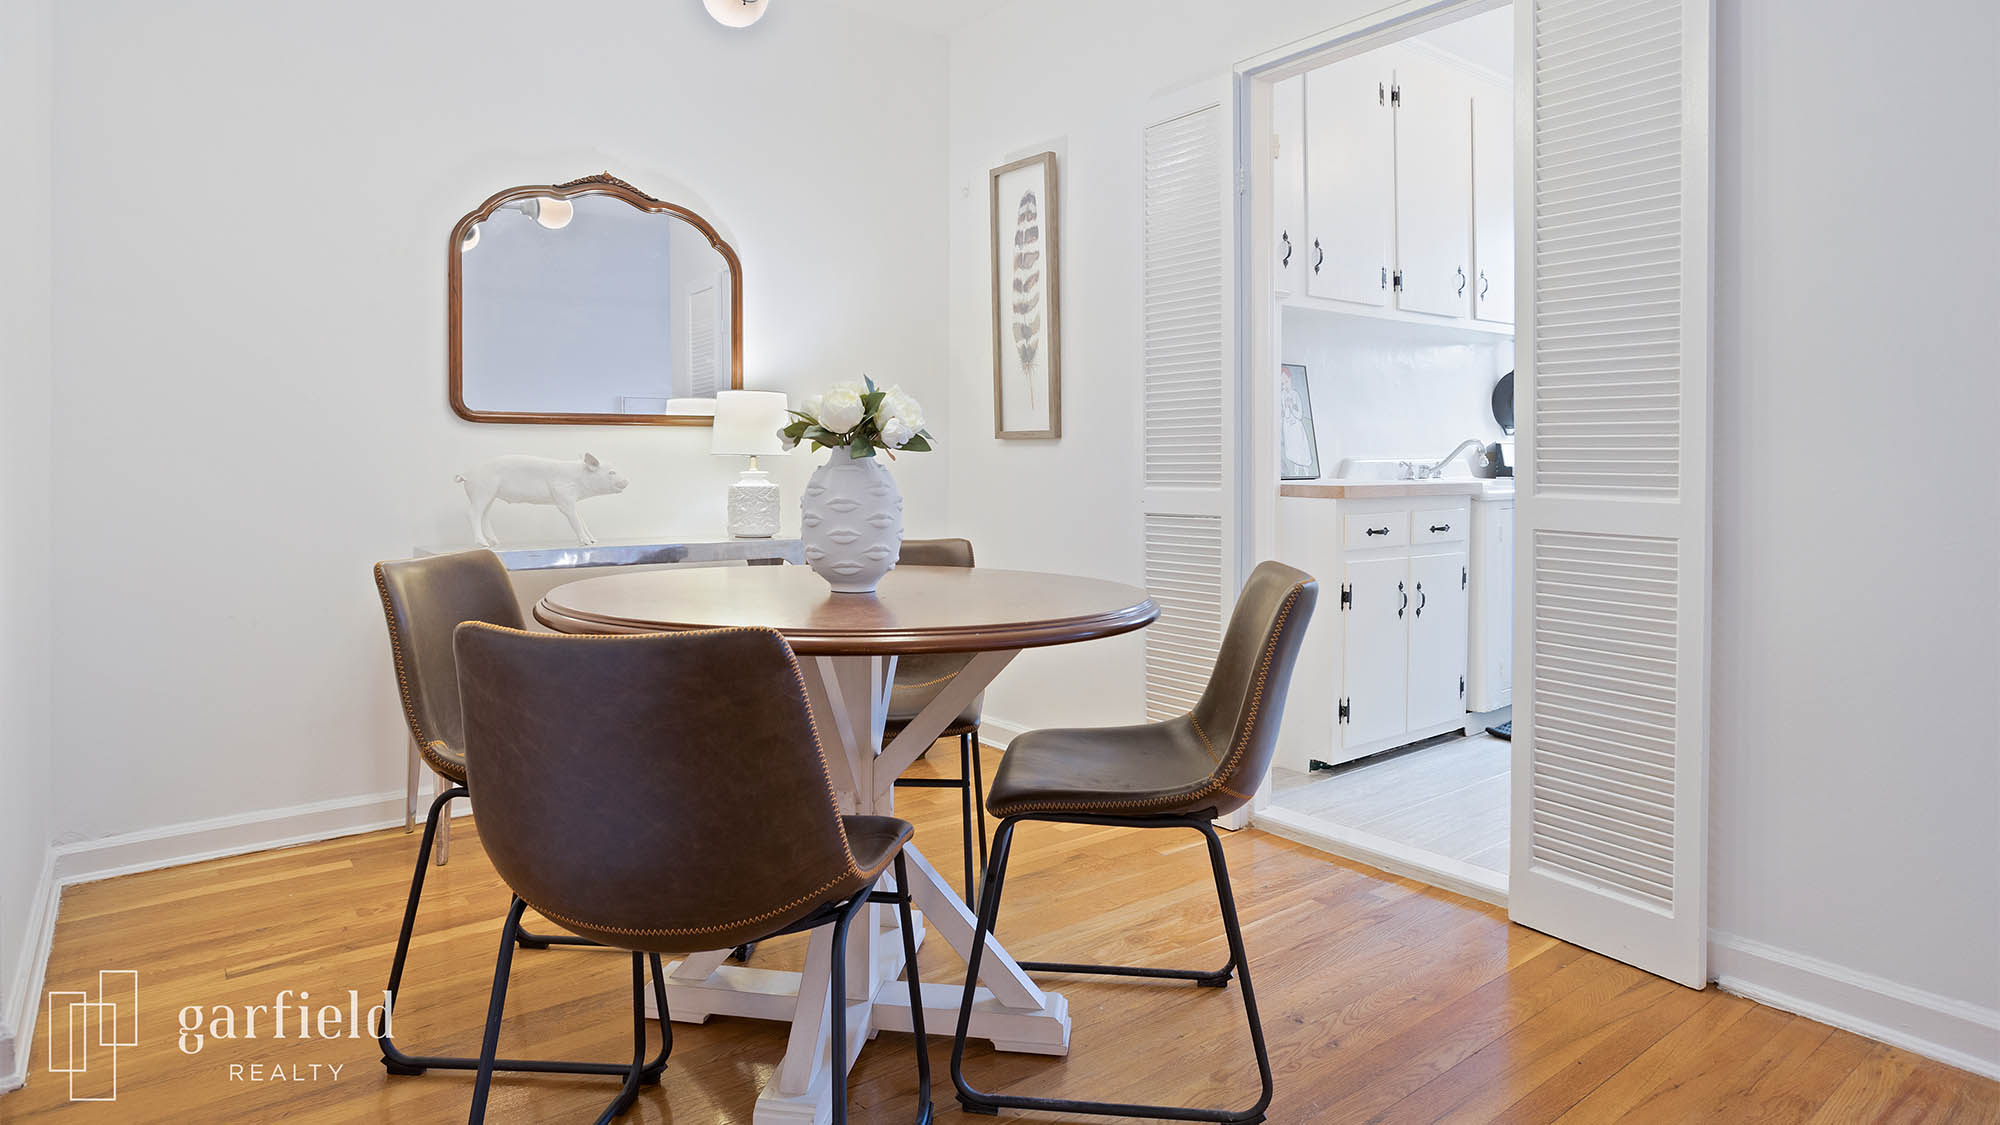 Staged dining room with four brown chairs and vase on table, wall mirror in background